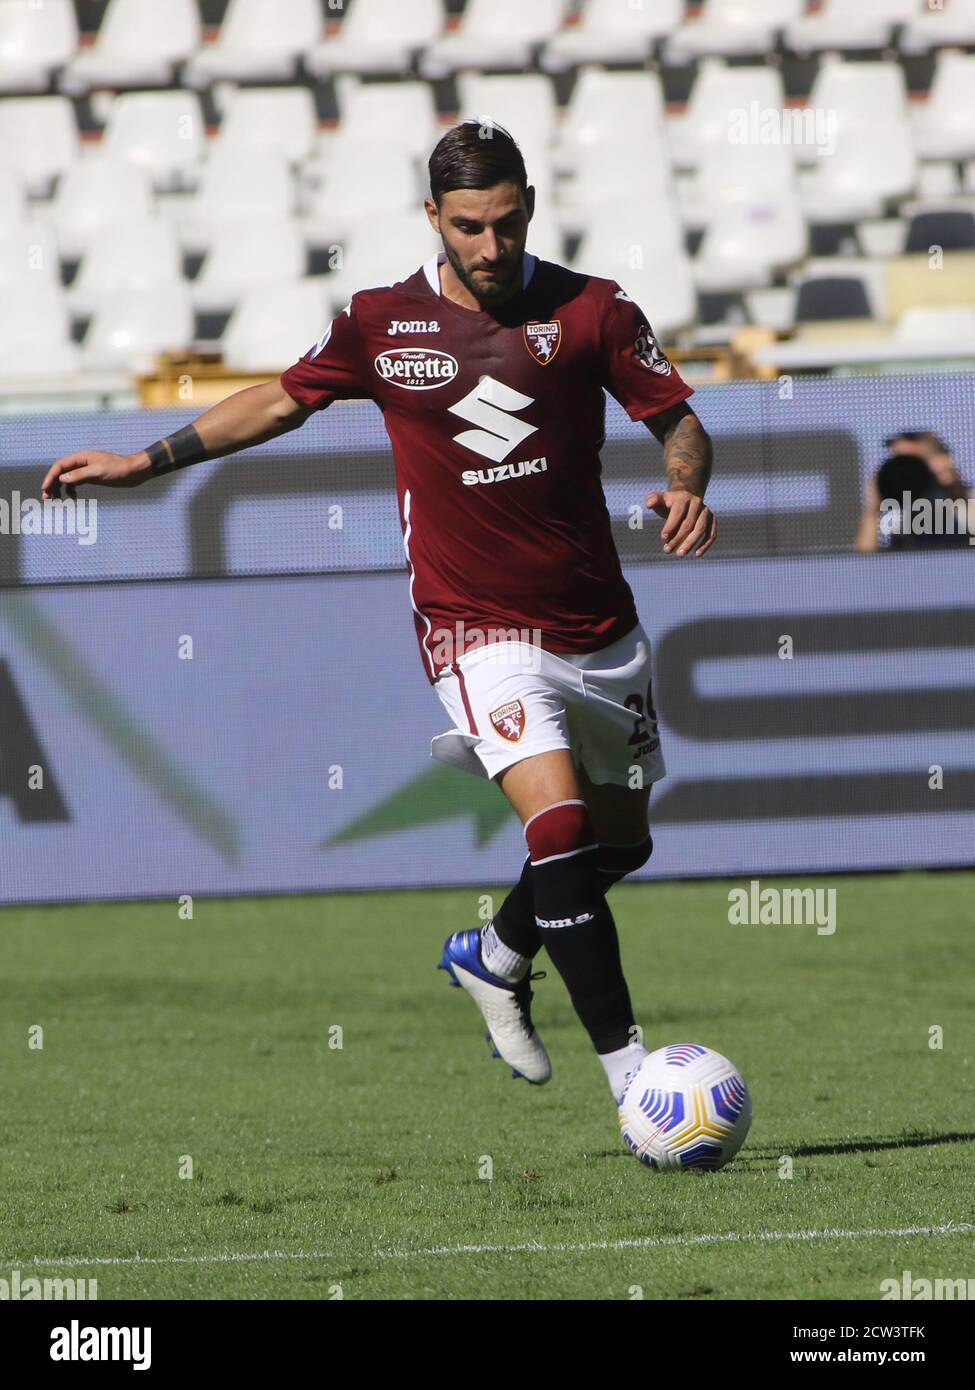 Turin, Italy. 26th Sep, 2020. Turin, Italy, 26 Sep 2020, 27 Nicola Murru (Torino FC) during Torino vs Atalanta - italian soccer Serie A match - Credit: LM/Claudio Benedetto Credit: Claudio Benedetto/LPS/ZUMA Wire/Alamy Live News Stock Photo